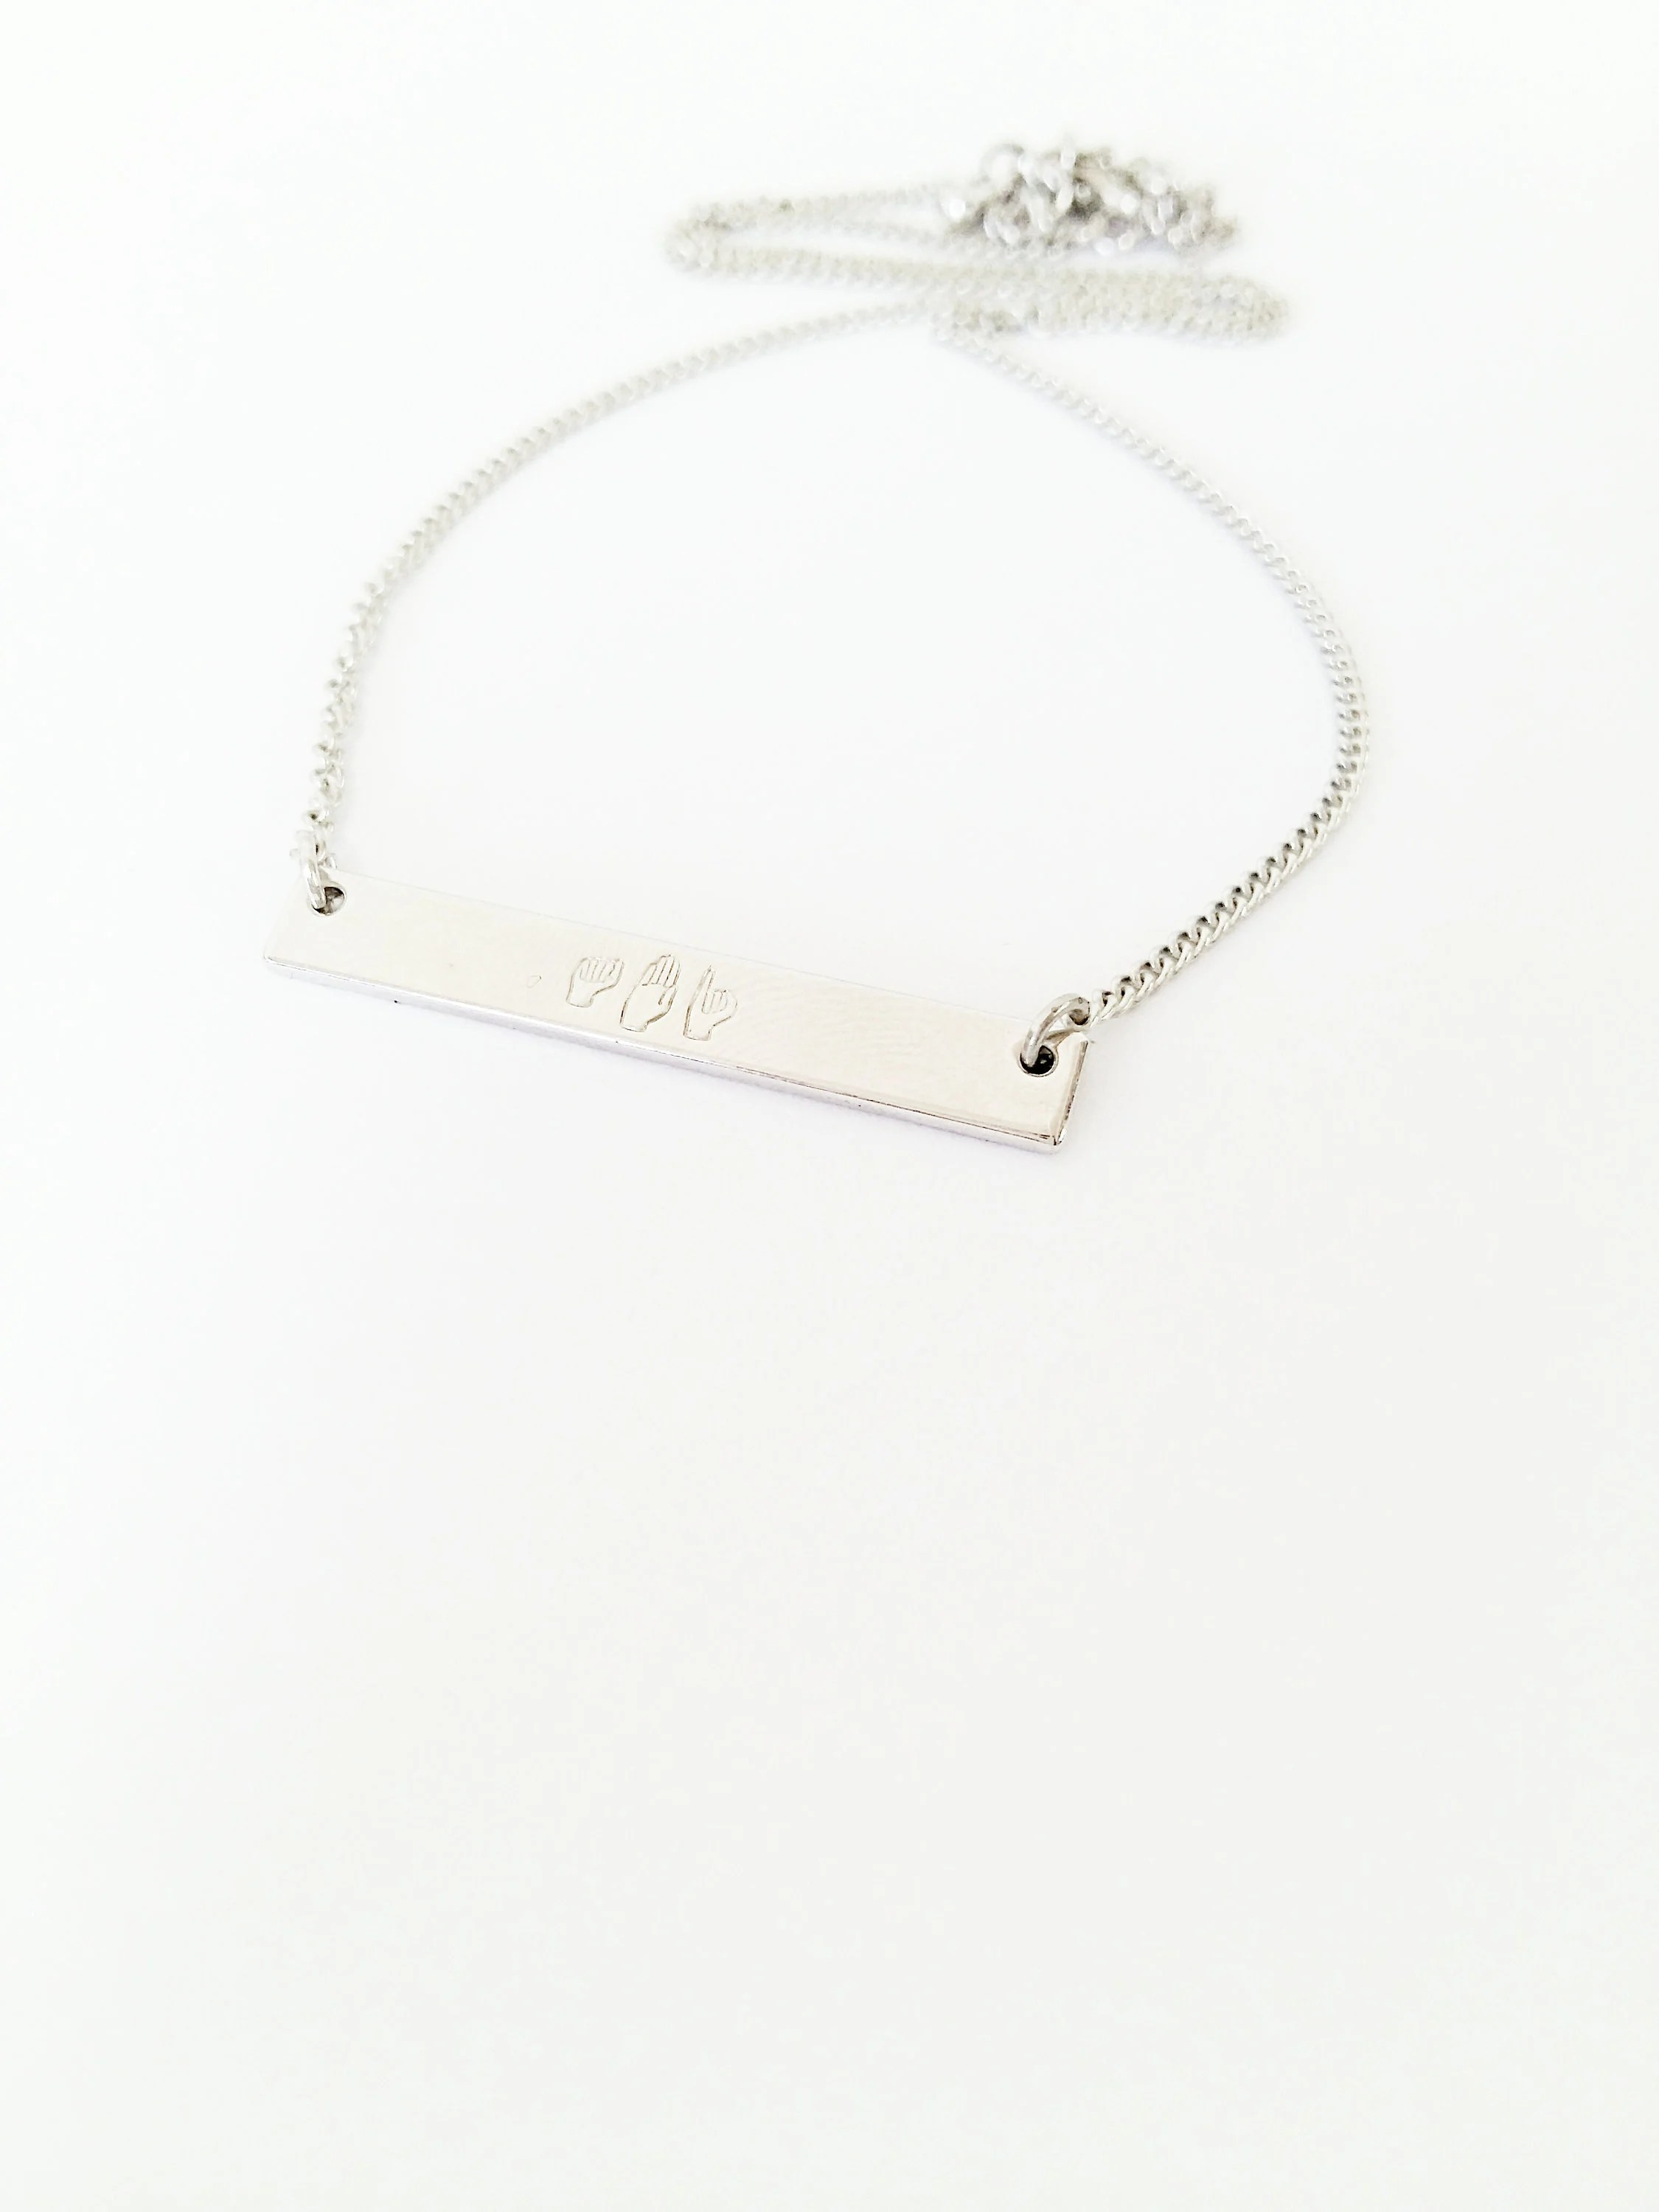 Personalized Name Necklace in Sign Language Bar Necklace // image 6